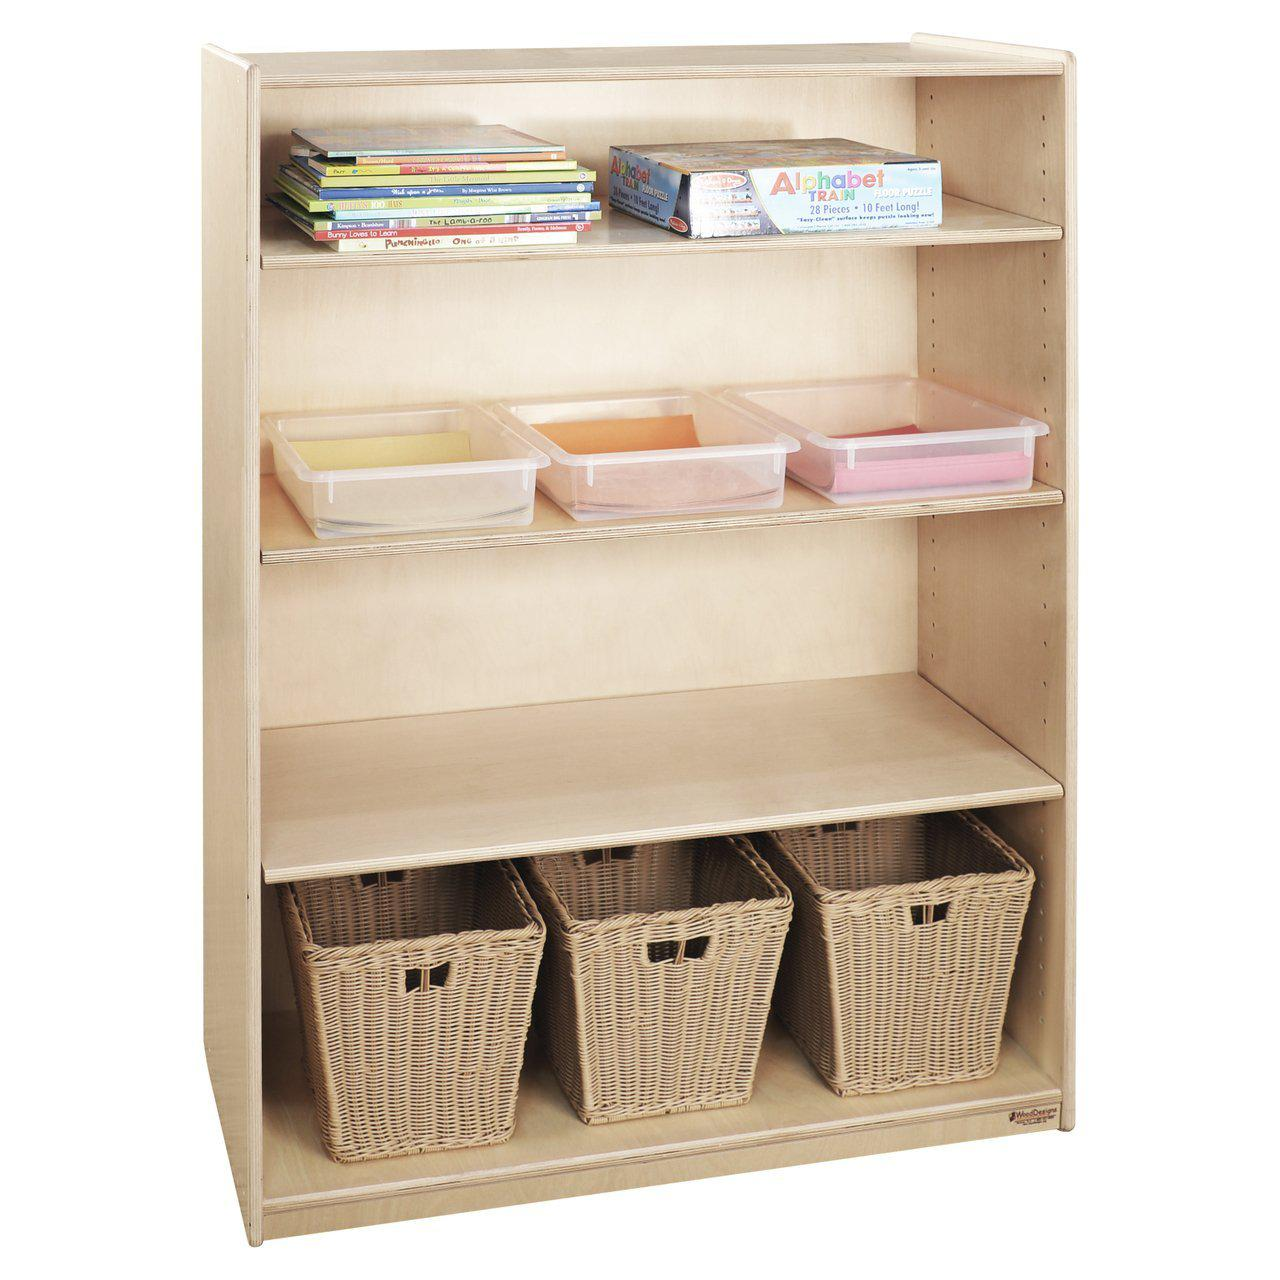 "Wood Designs Bookshelf with Adjustable Shelves, 49""H-Pre-School Furniture-"